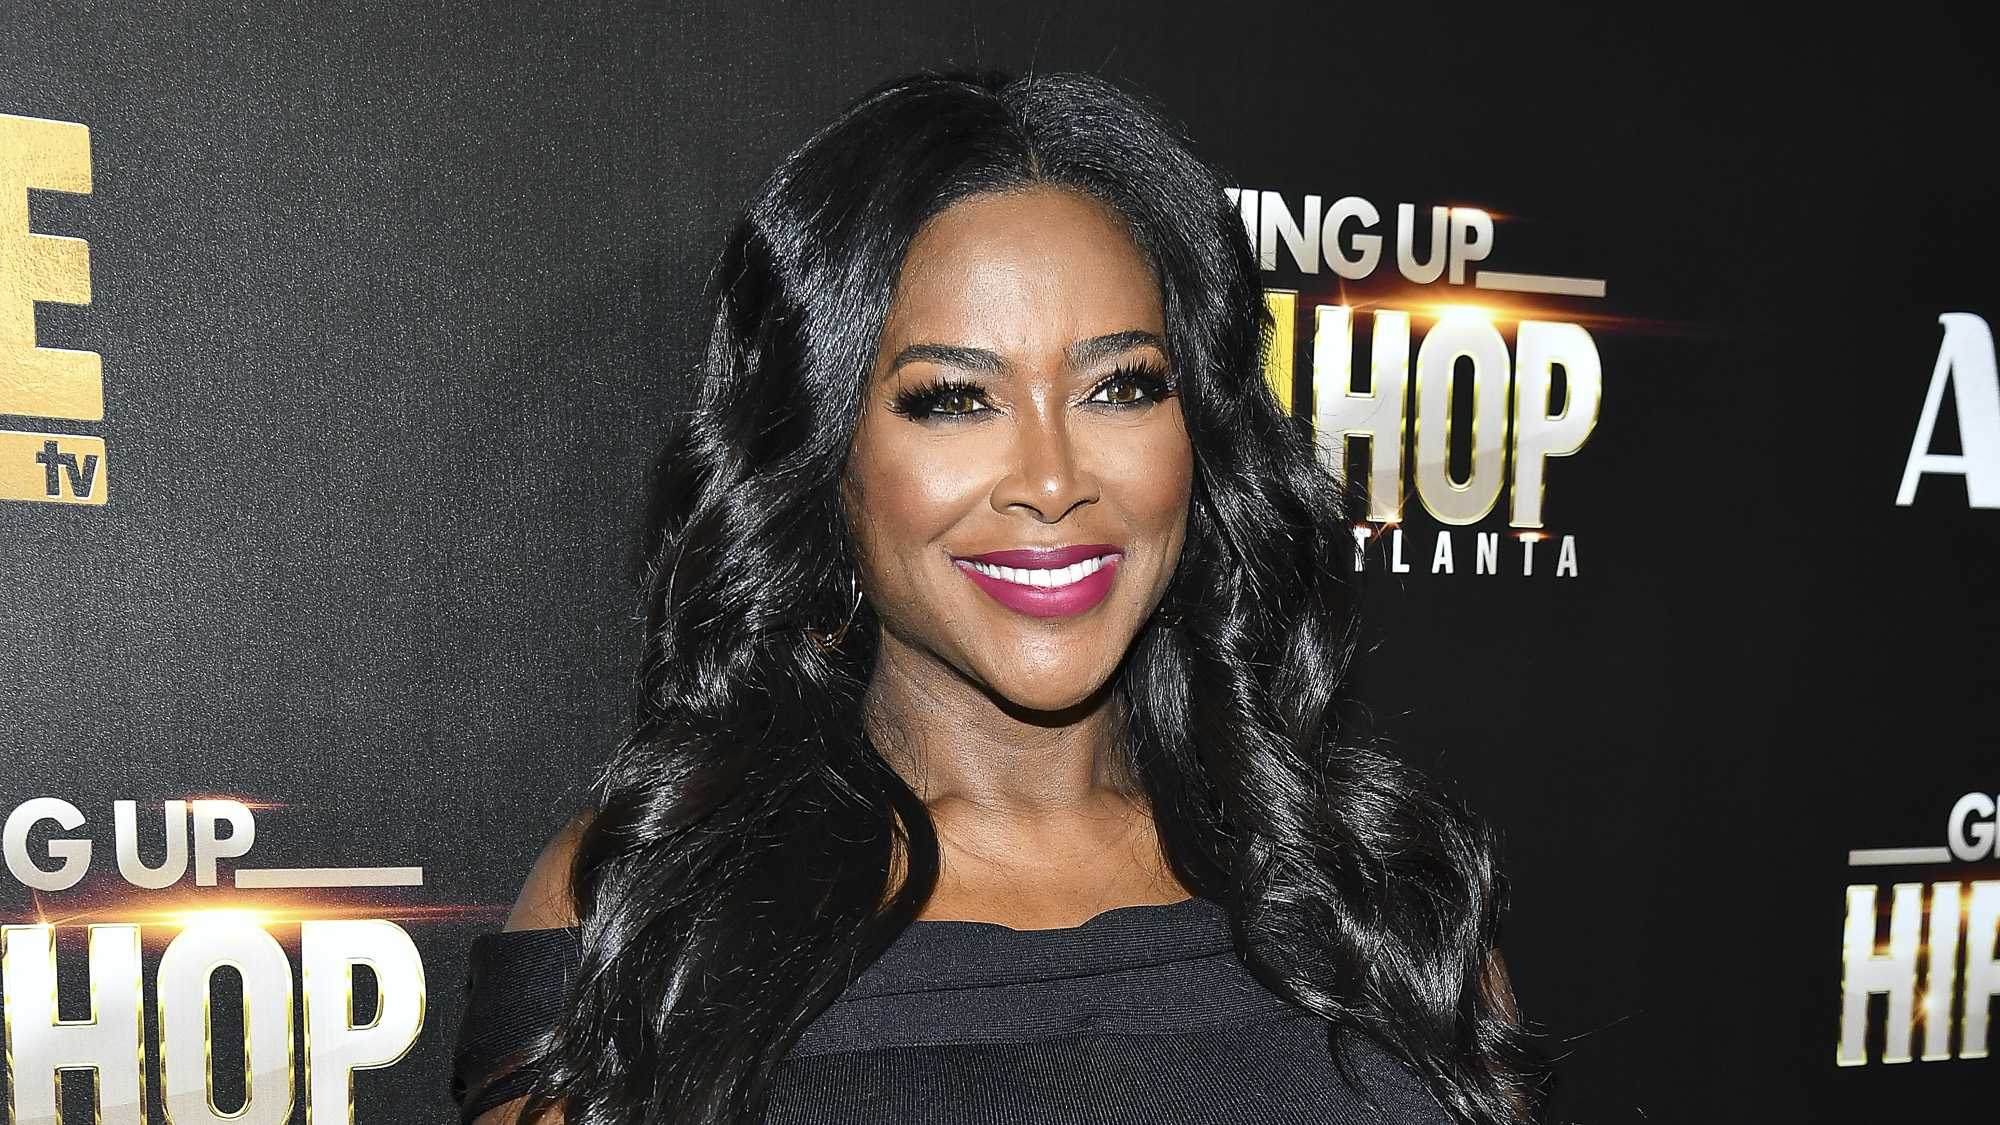 kenya-moore-posts-new-adorable-picture-of-brooklyn-and-fans-say-it-made-their-day